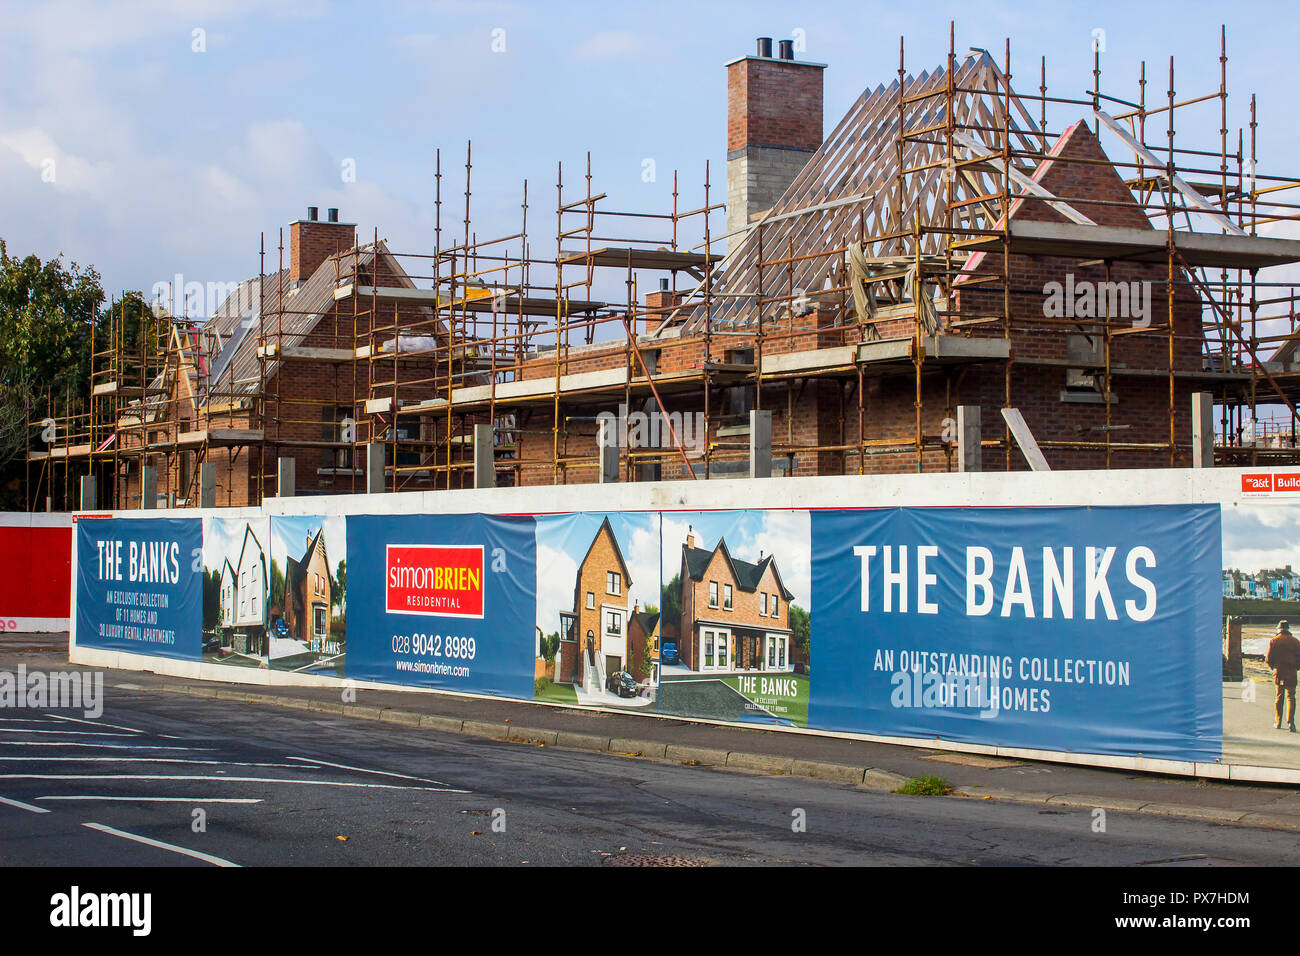 Contractor Signs Stock Photos & Contractor Signs Stock Images - Alamy